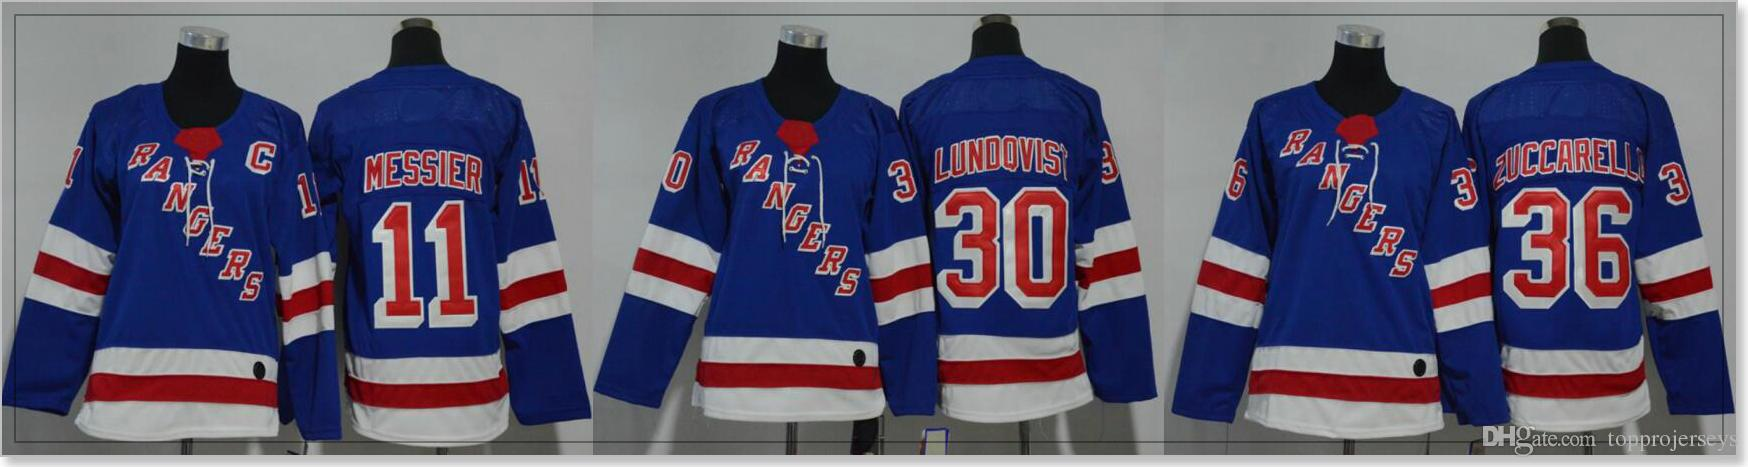 New York Rangers Womens  11 Mark Messier 30 Henrik Lundqvist 36 Mats  Zuccarello Ice Hockey Shirts Sports Team Jerseys Stitched Embroidery UK  2019 From ... fad906885